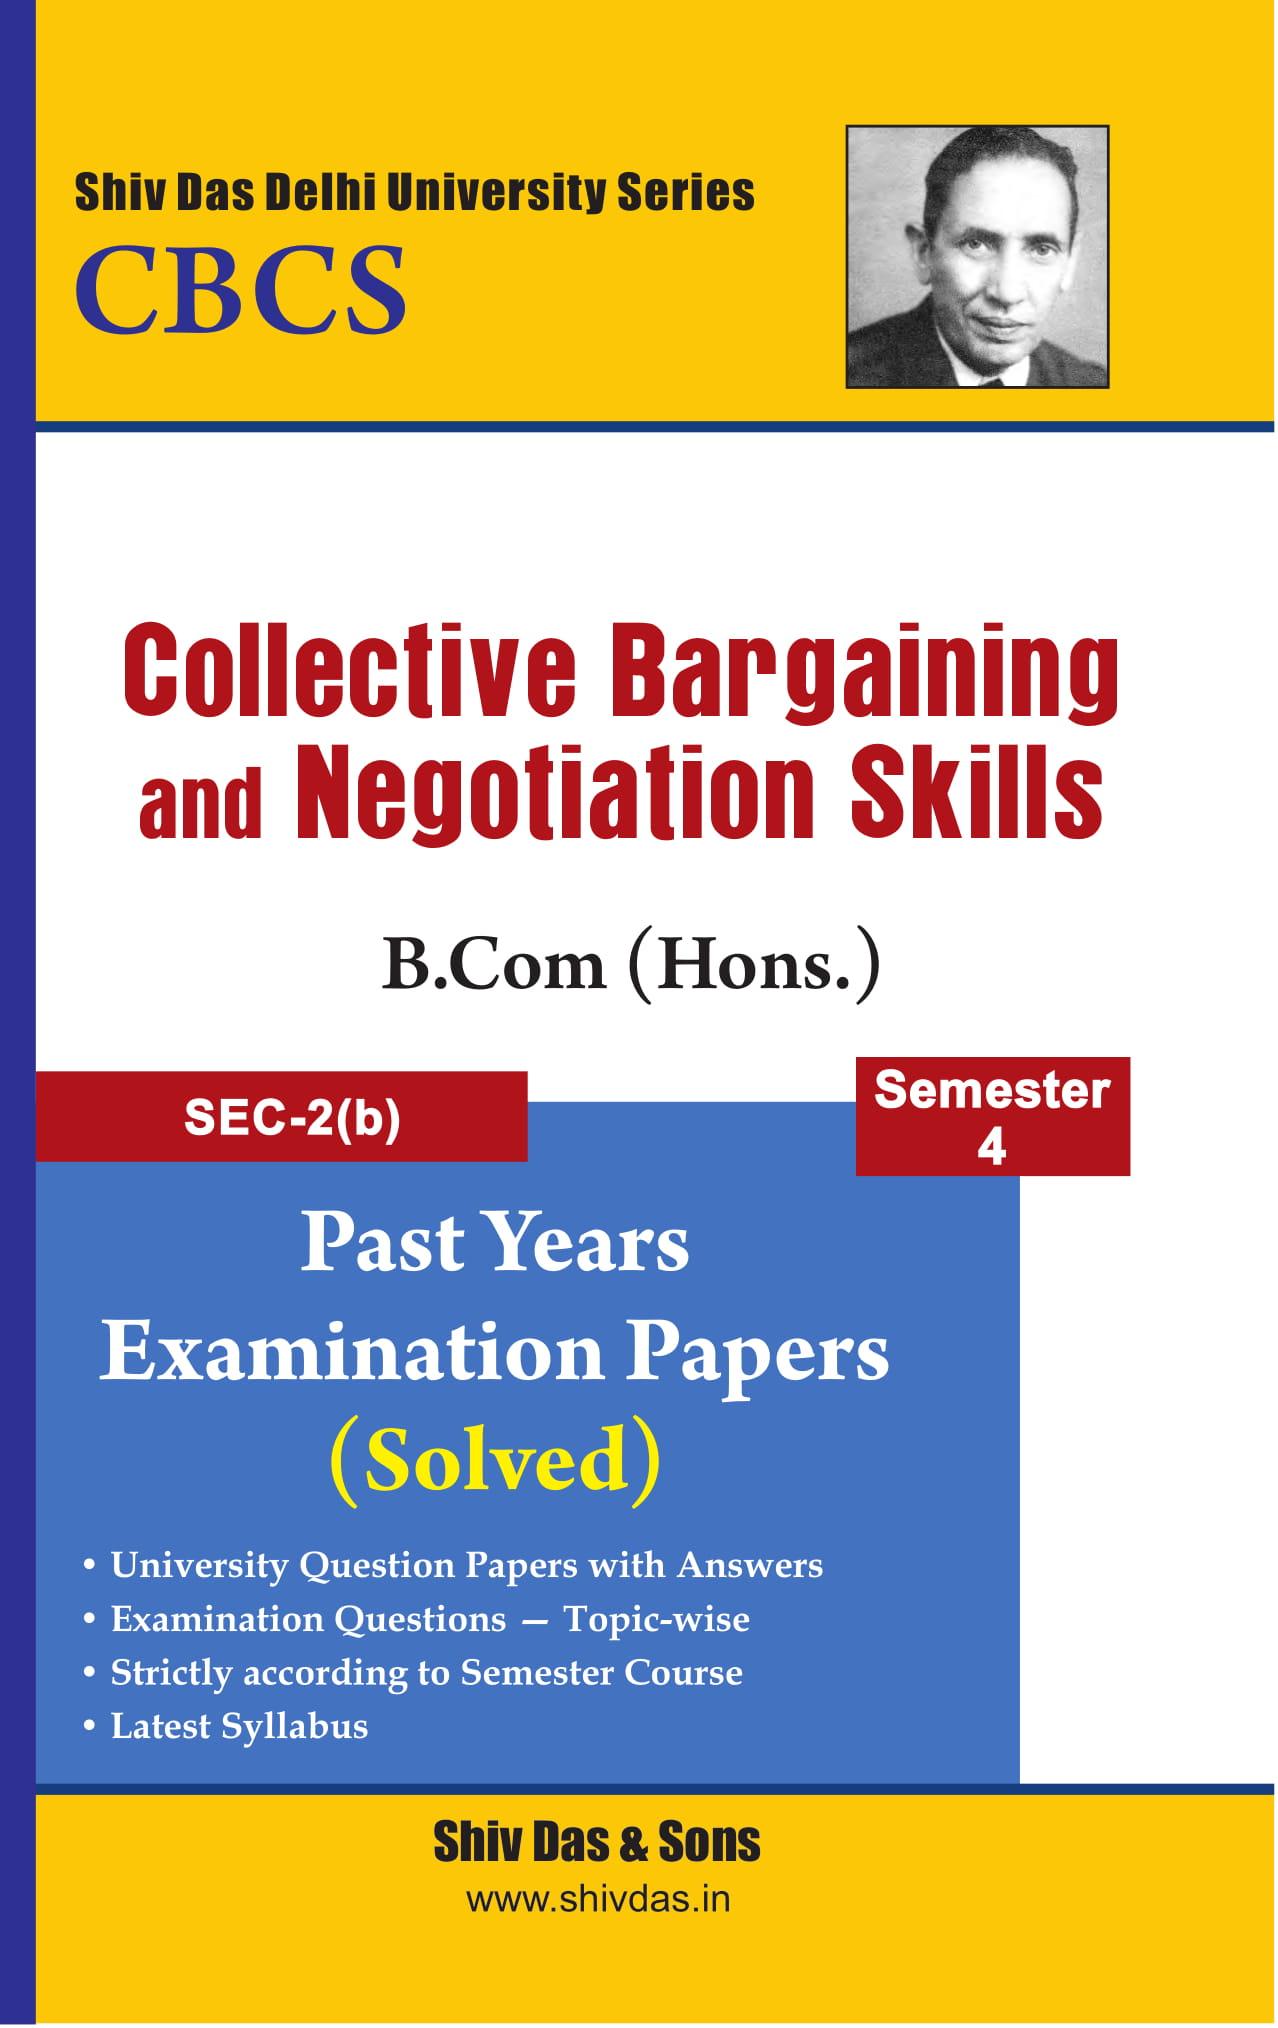 Collective Bargaining and Negotiation Skills for B.Com Hons Semester 4